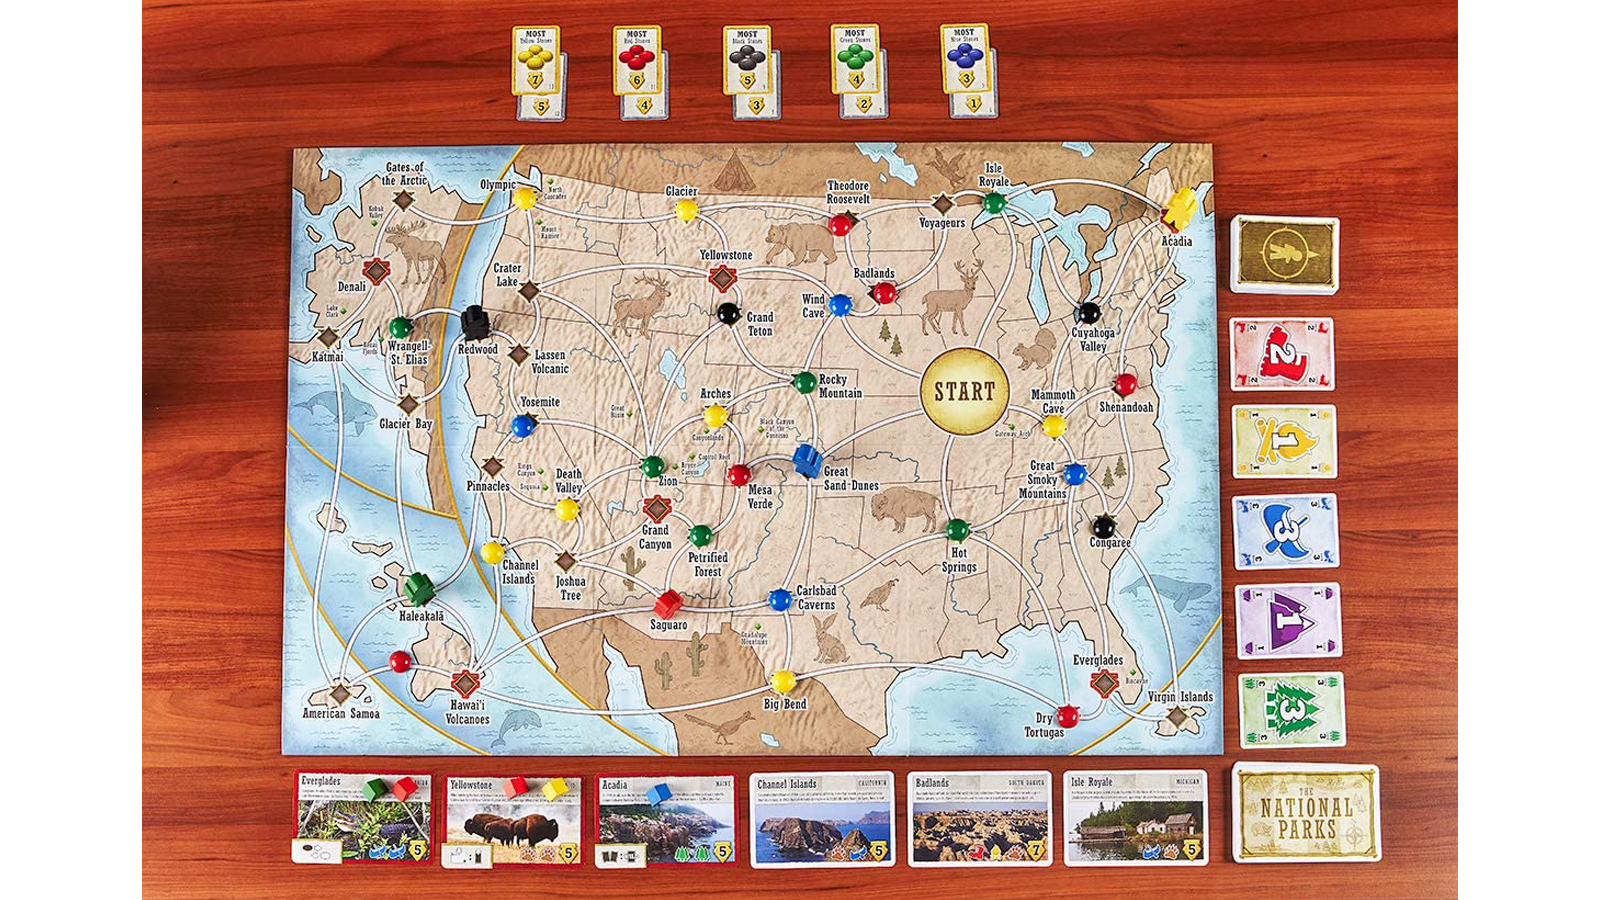 Top-down view of Trekking the National Parks game board and components